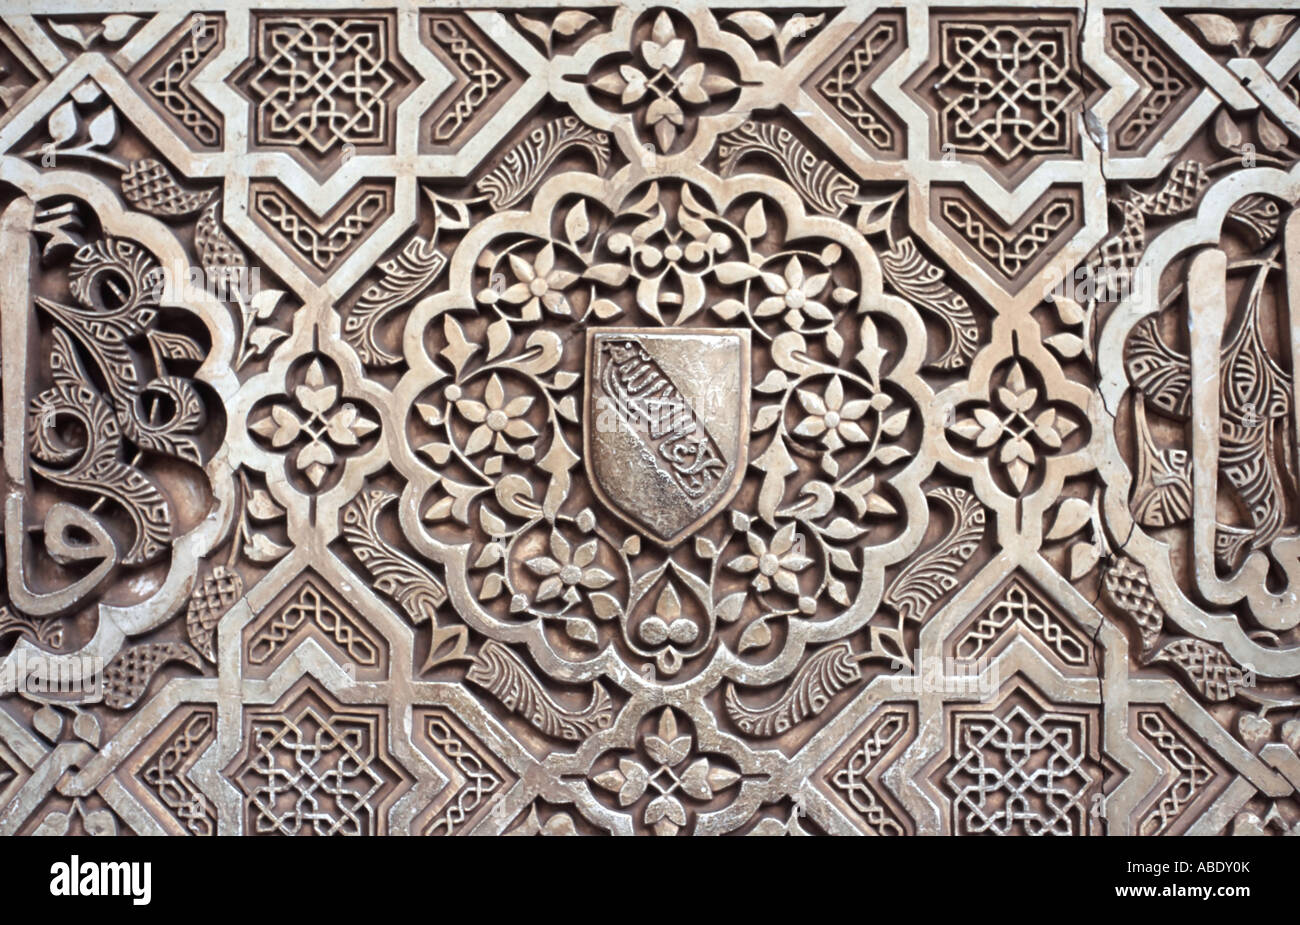 Stone Carving, Alhambra palace, from the 'golden room' - Stock Image